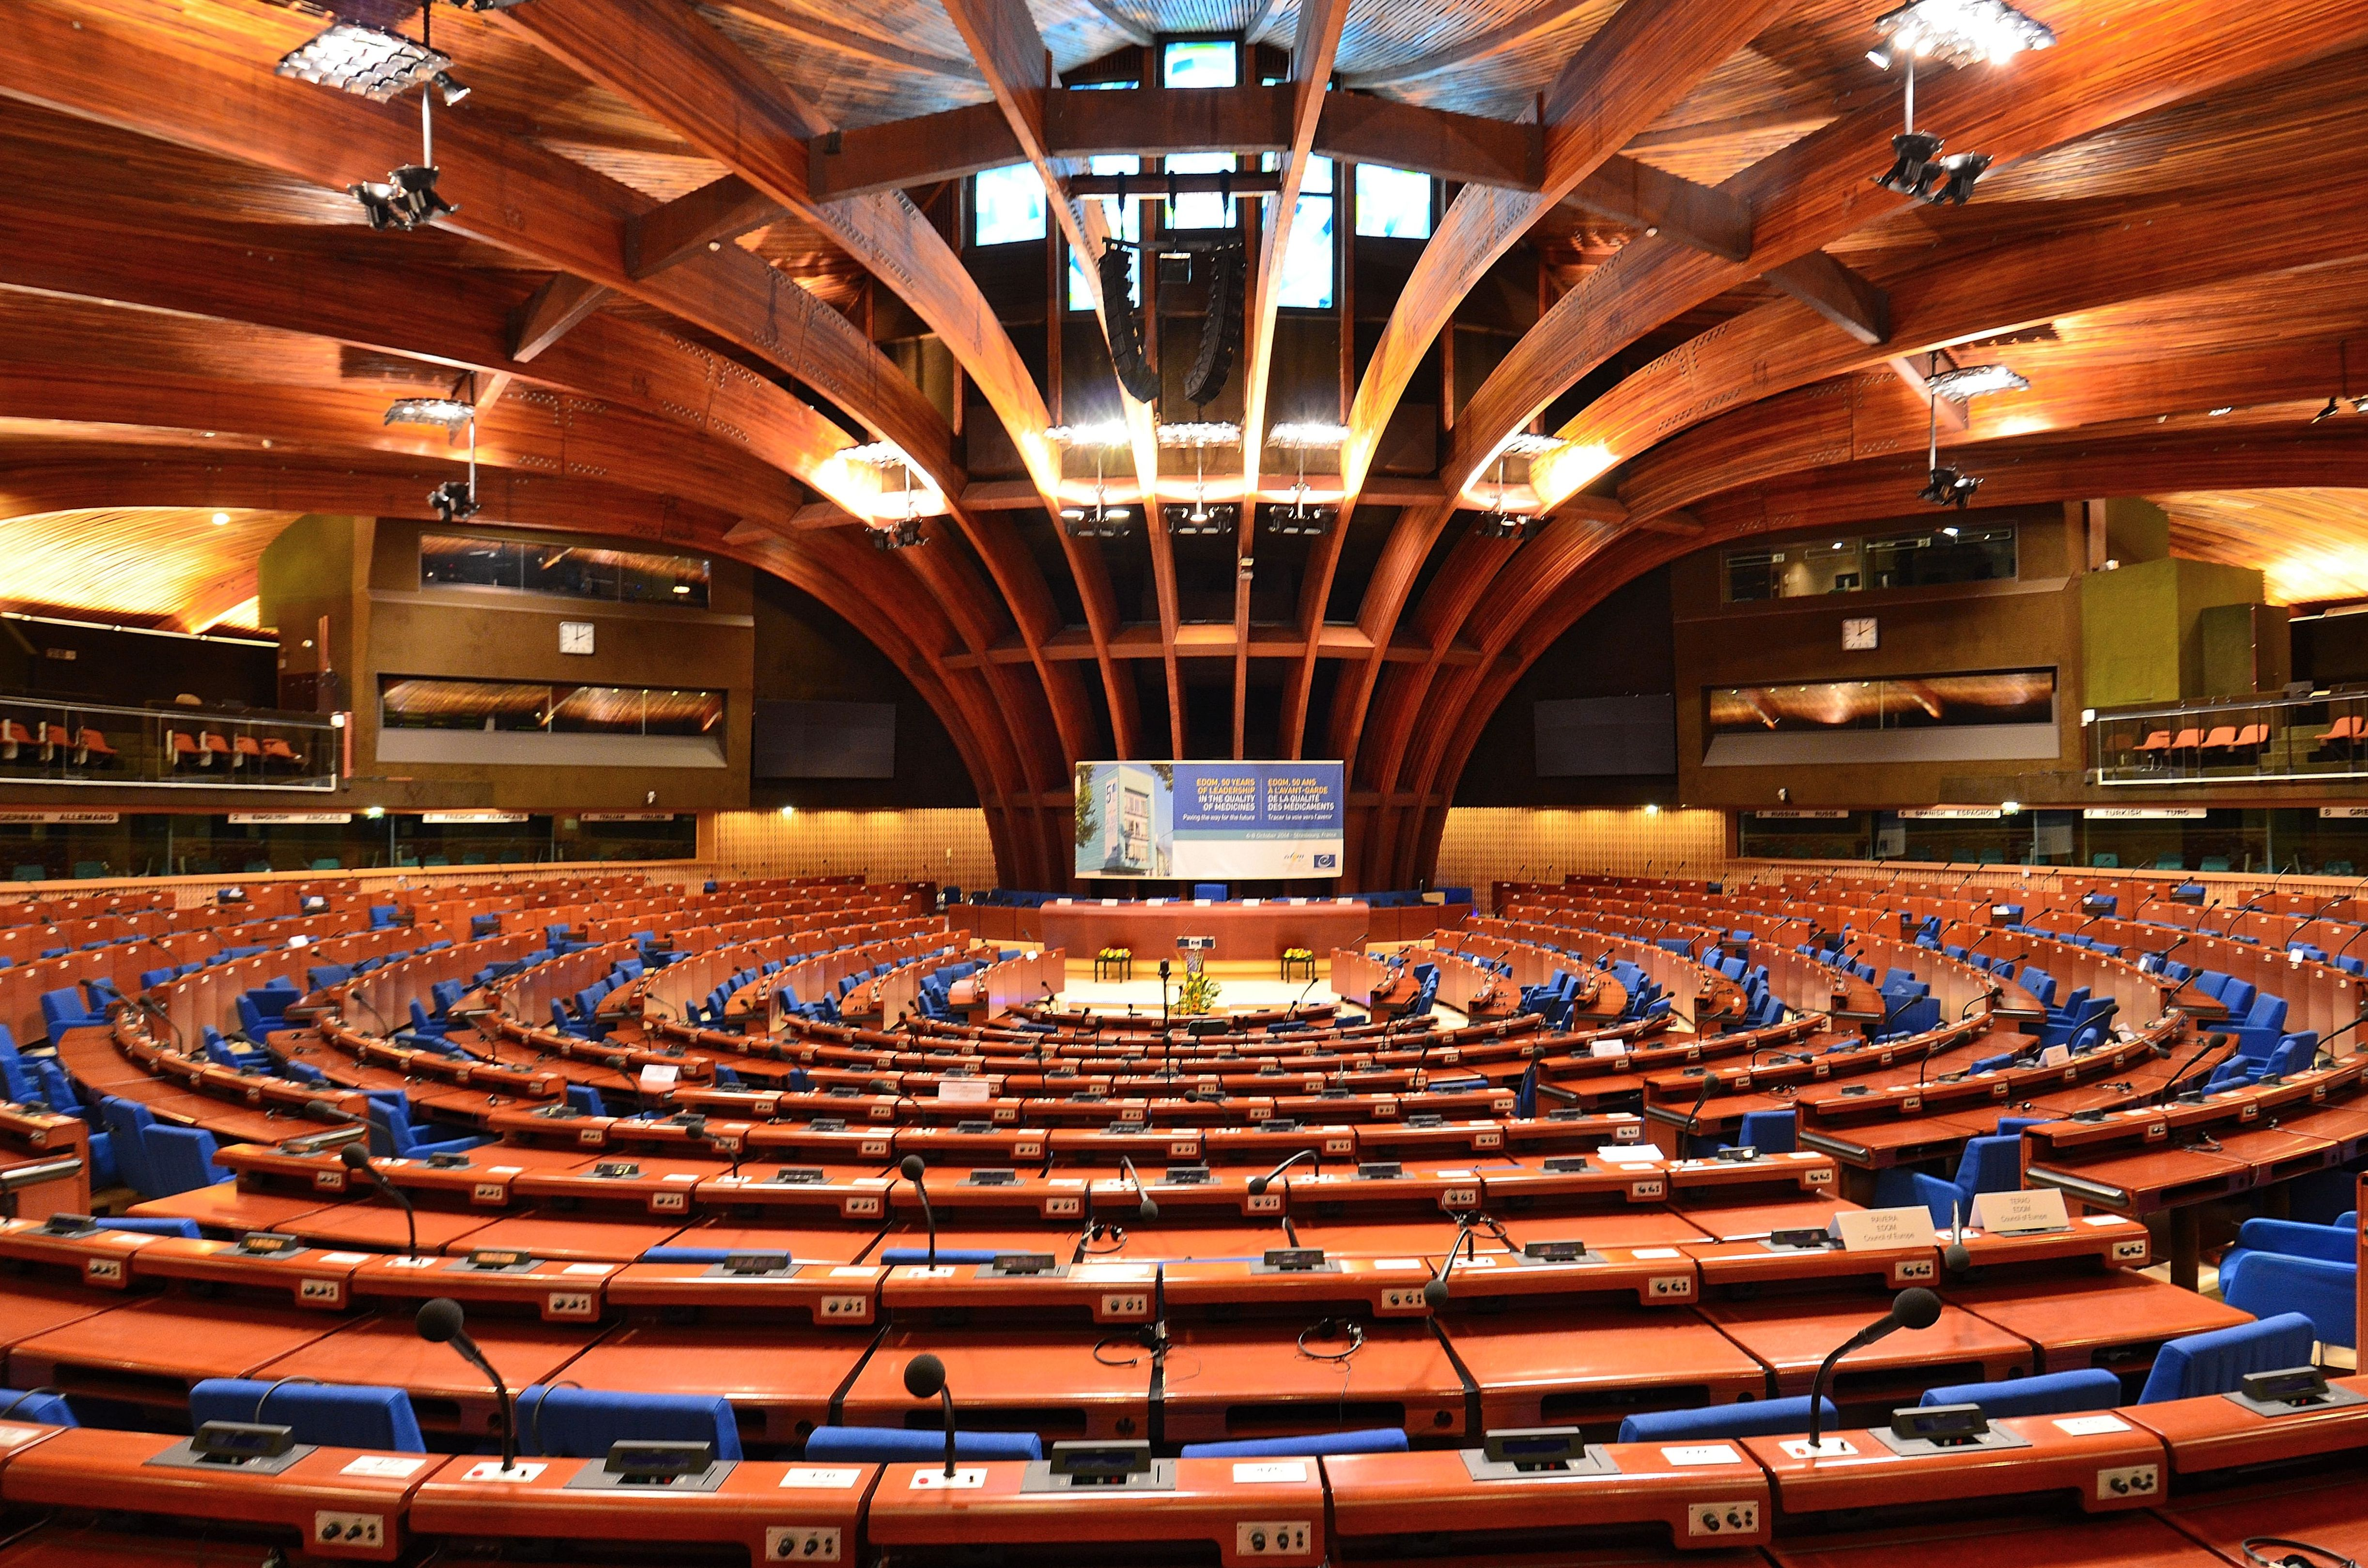 File:Plenary chamber of the Council of Europe's Palace of Europe 2014 01.JPG